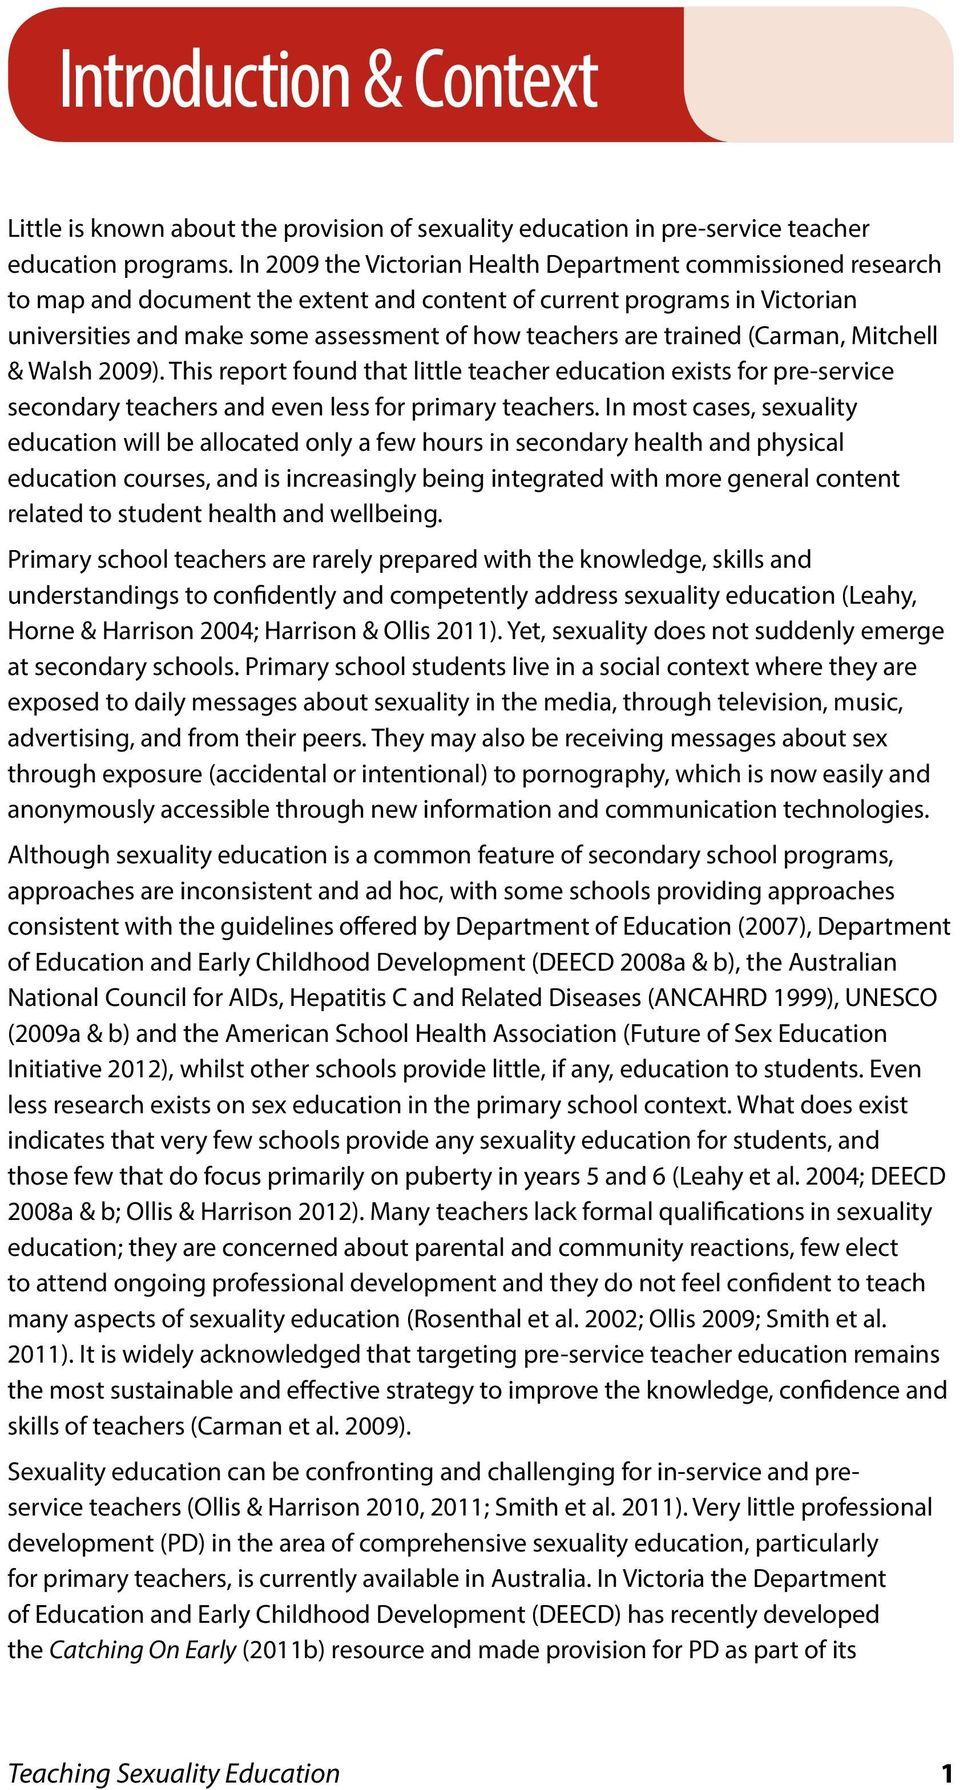 trained (Carman, Mitchell & Walsh 2009). This report found that little teacher education exists for pre-service secondary teachers and even less for primary teachers.